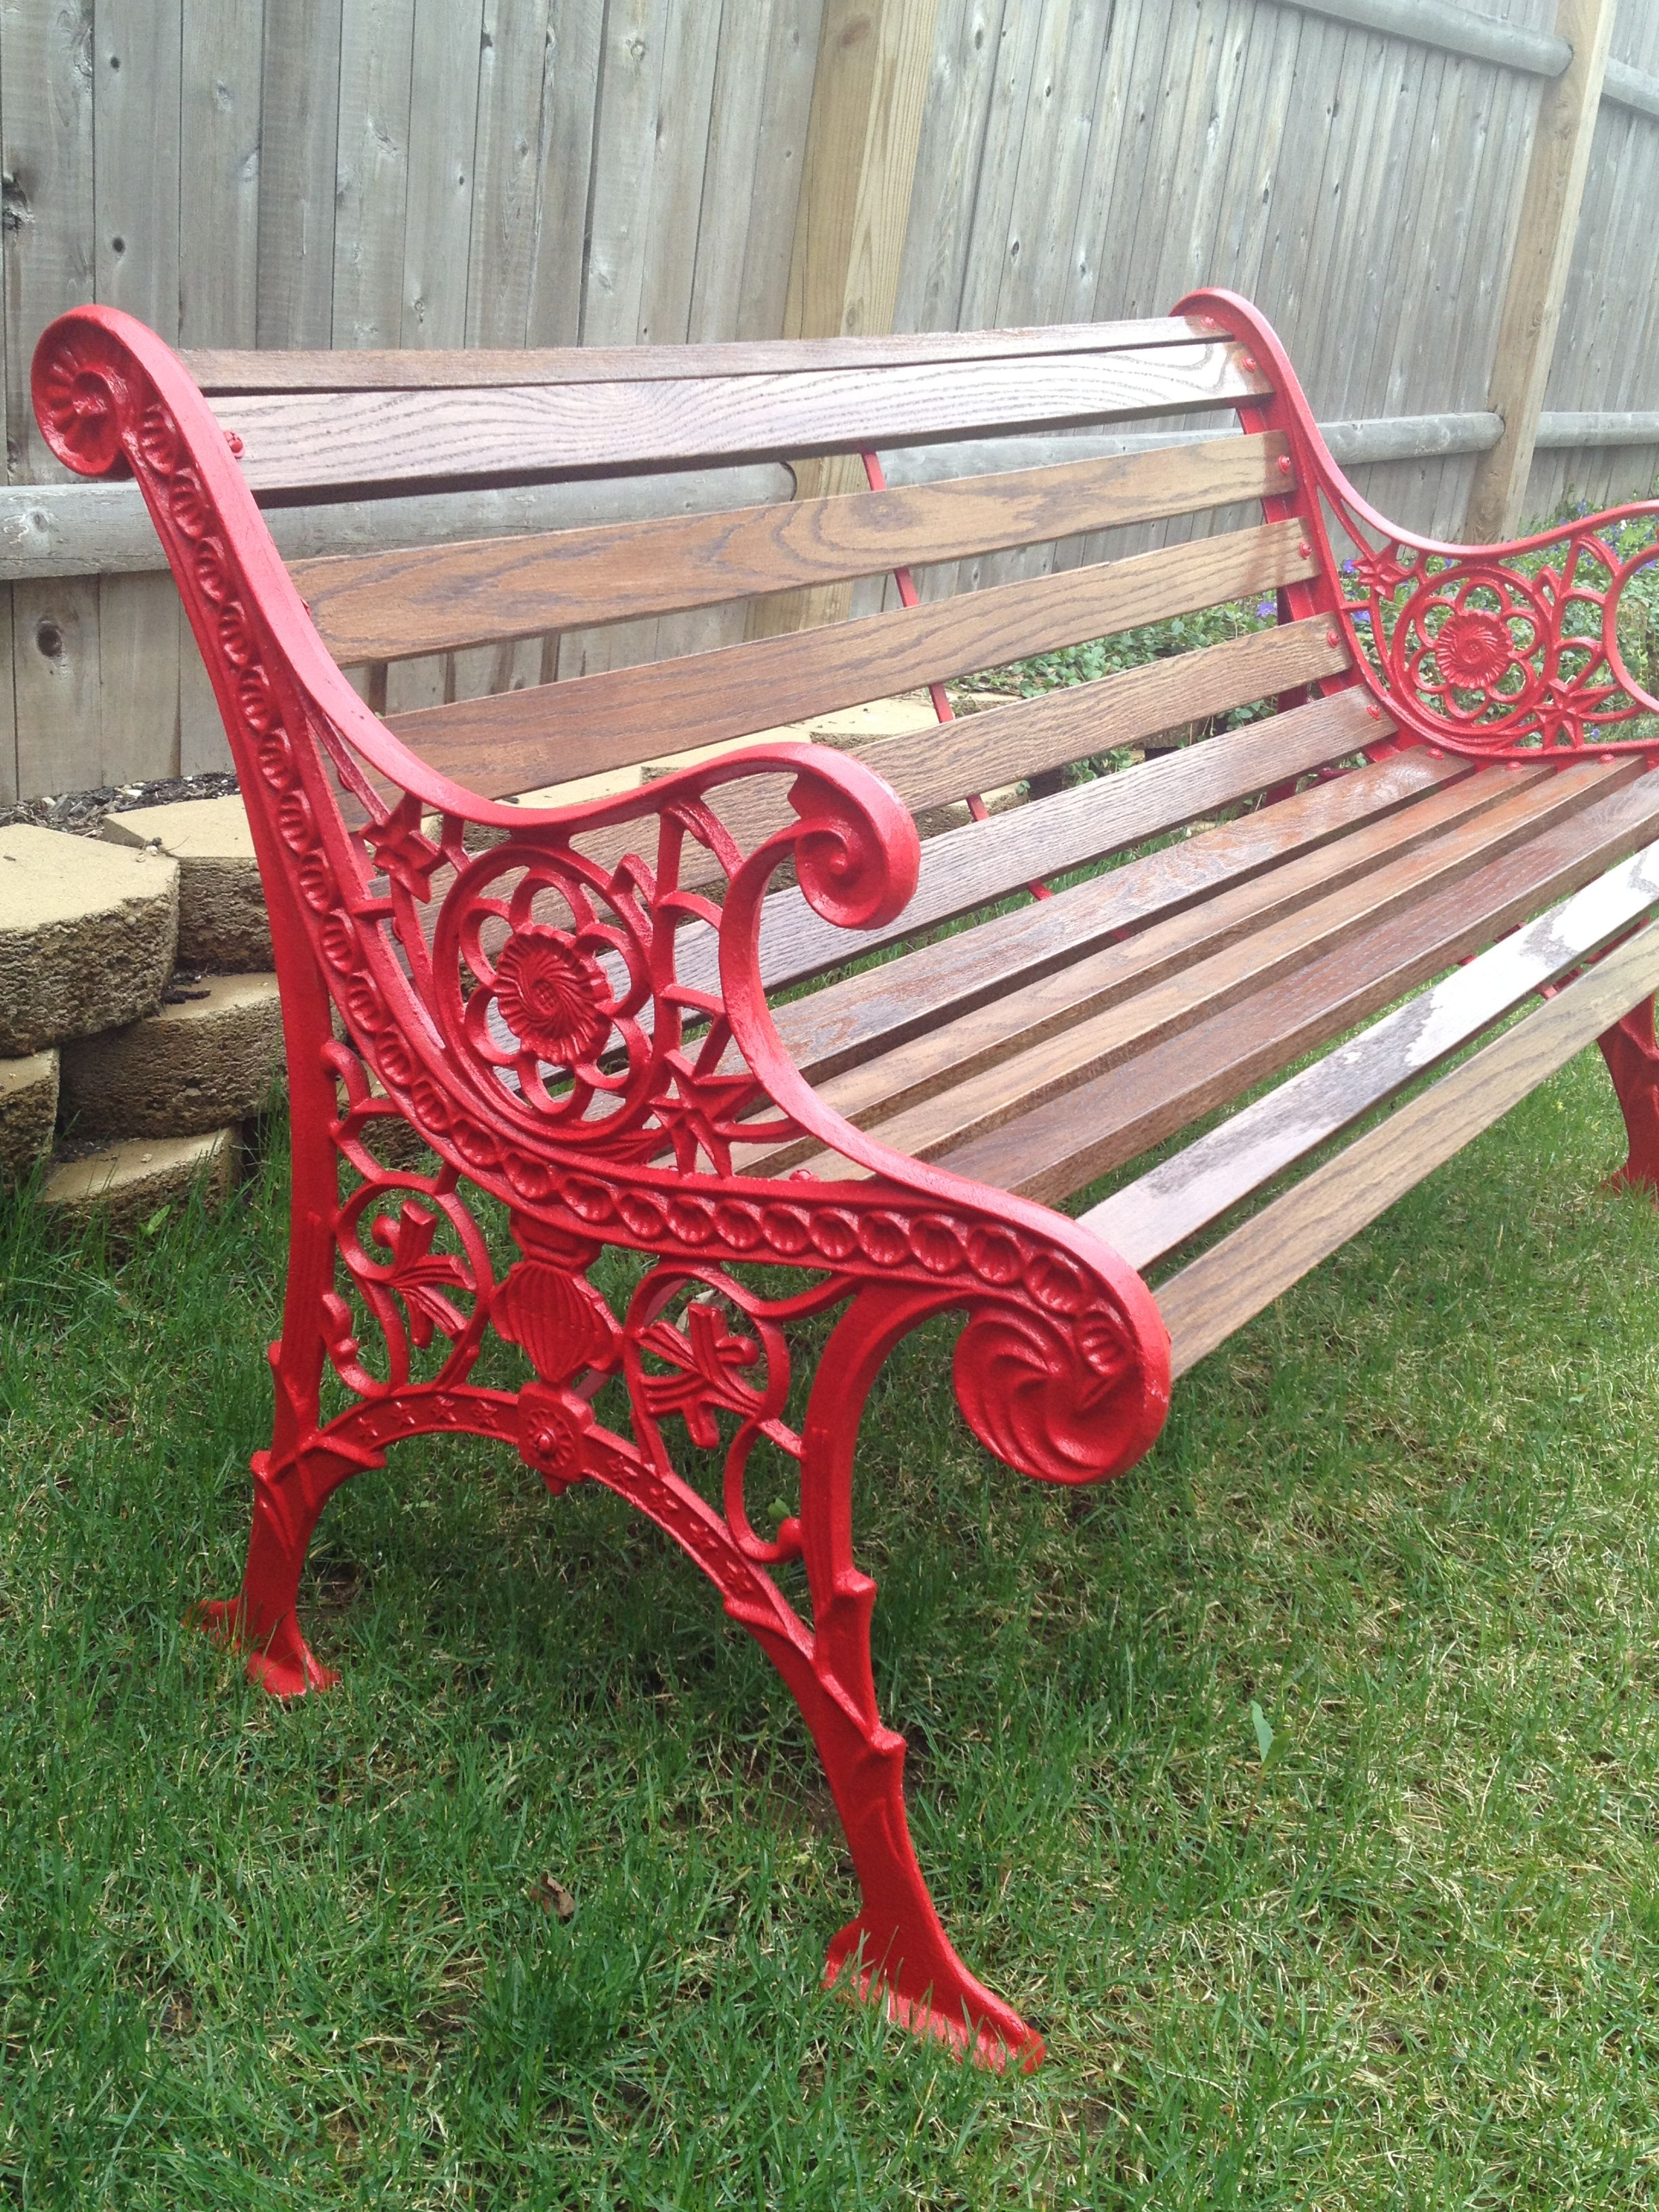 Vintage Cast Iron Bench Restored Benches